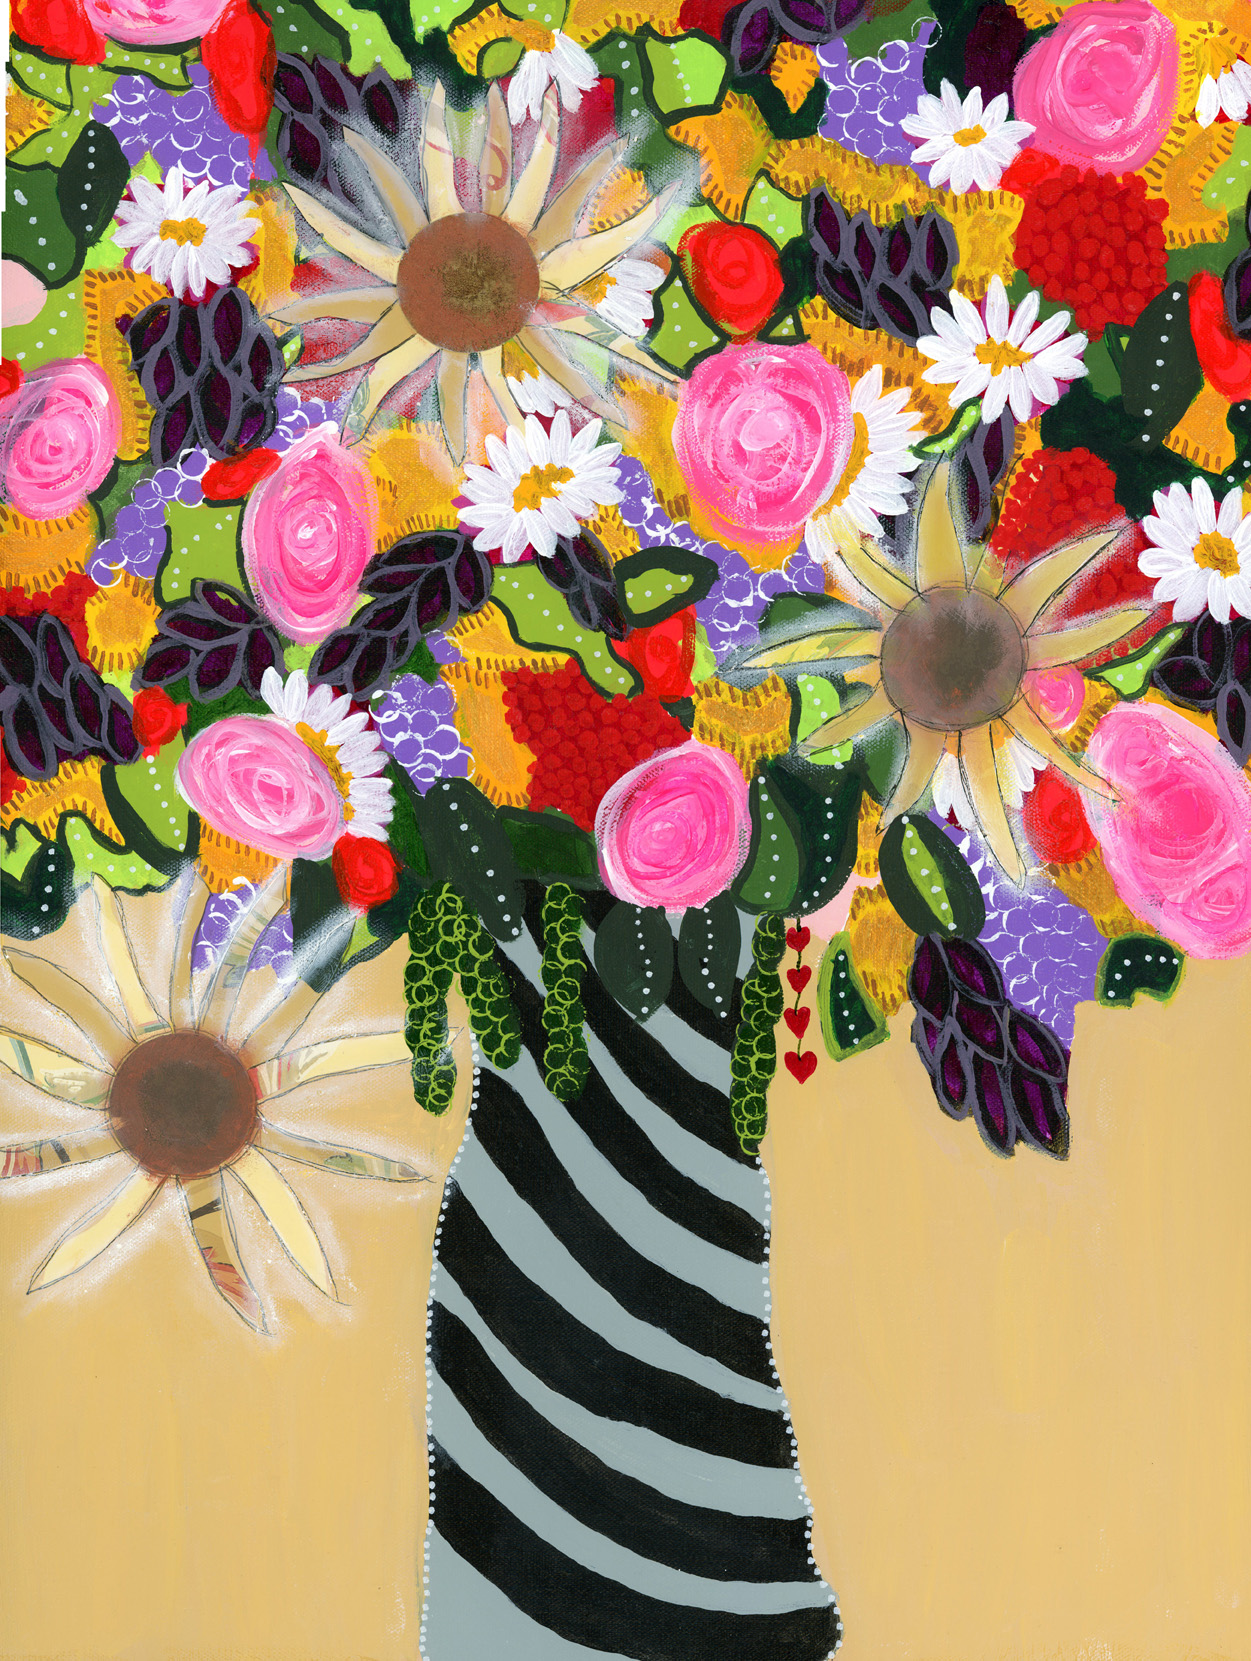 A bouquet full of colorful garden flowers in a grey and black striped vase.